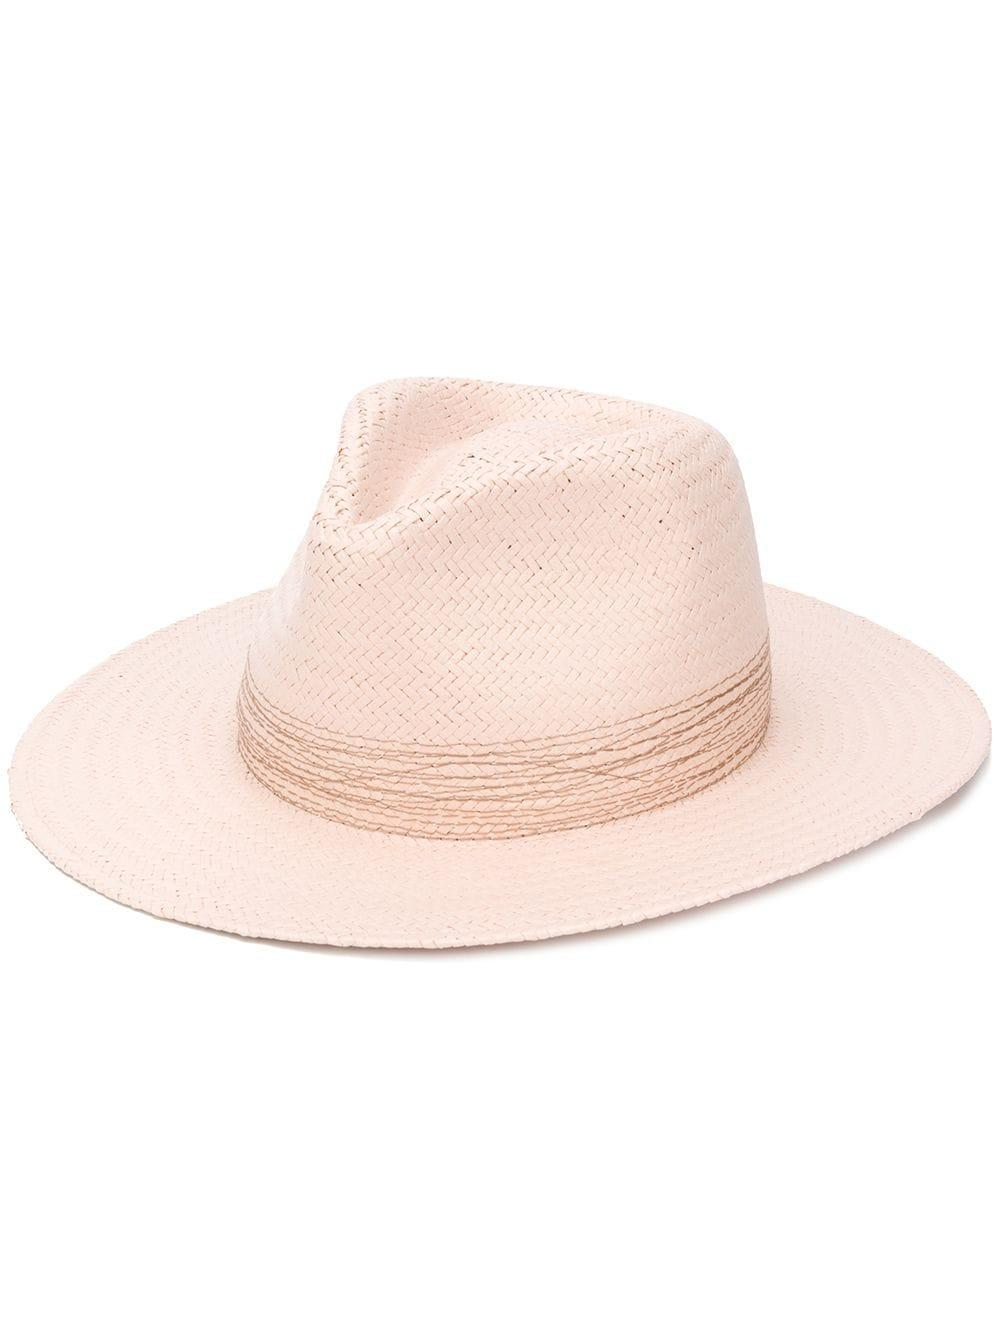 Packable Straw Fedora Item # WJW20S1001JM